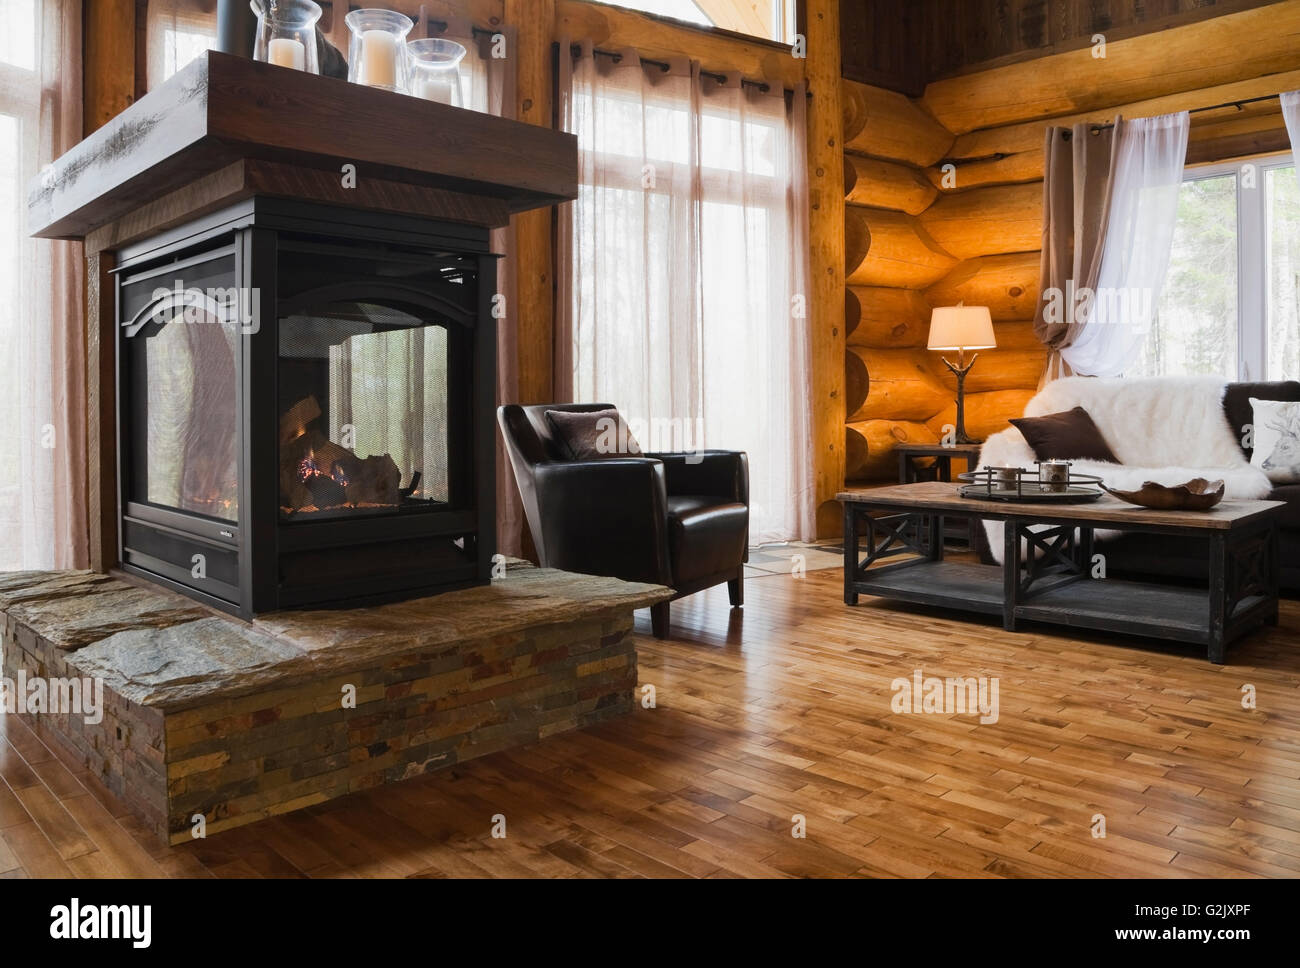 gas fireplace stock photos u0026 gas fireplace stock images alamy